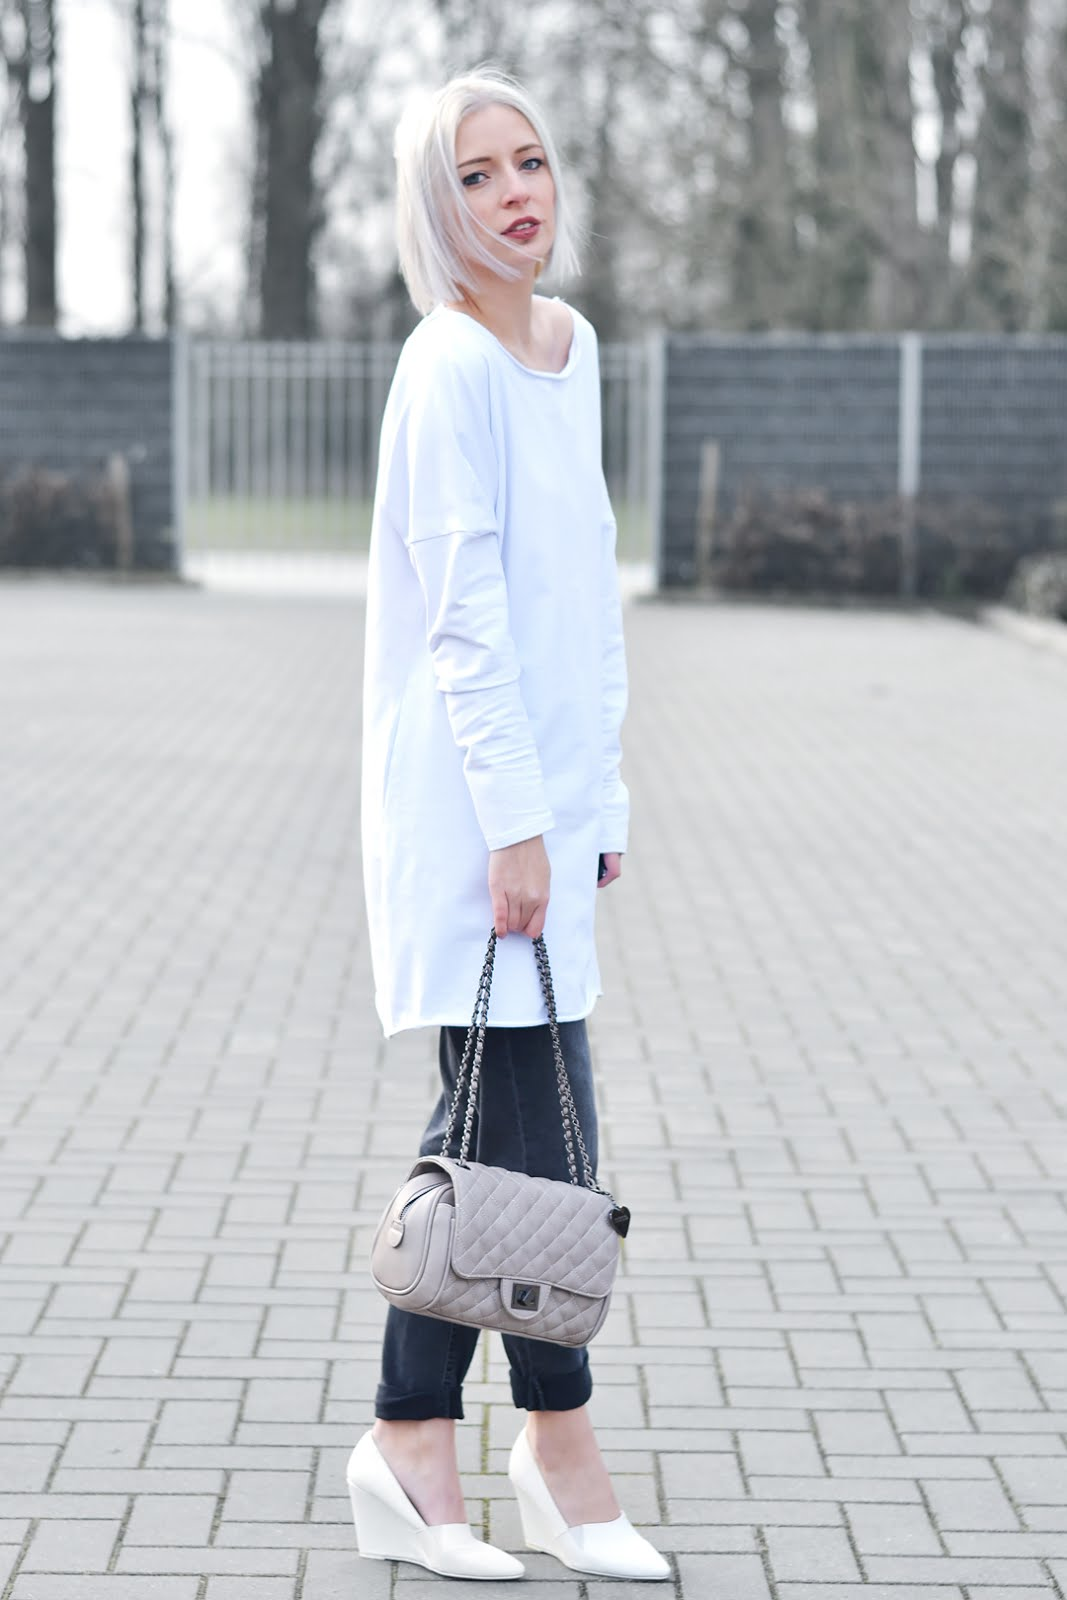 Open back dress, sheinside, all white, marc b bag, knightbridge, h&m grey boyfriend jeans, h&m trend, white wedge heels, street style, inpiration, trends, 2016, belgian fashion blogger, belgische mode blogger